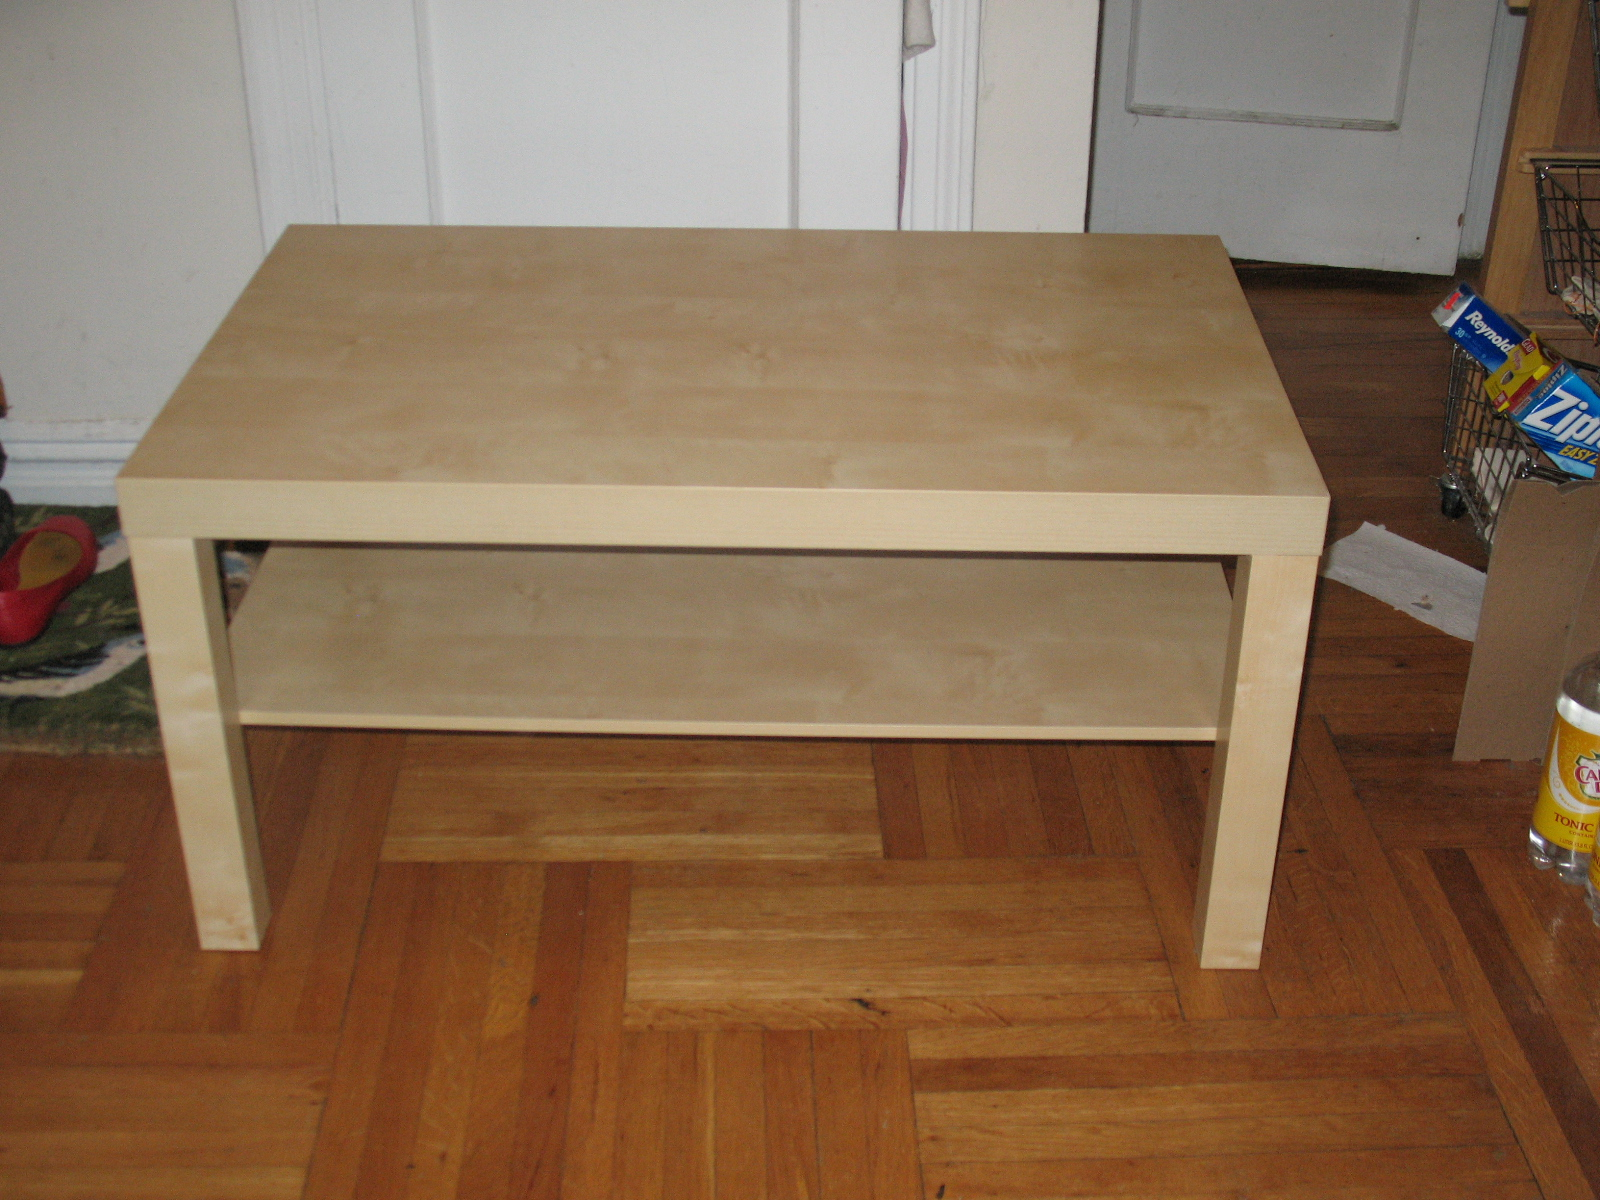 Ikea Coffee Table Lack I Thought About Not Hacking The Lack Coffee Table And Doing This All From Scratch But After Pricing Out The Costs Of 4 Legs Leg Hardware And Har (View 4 of 9)